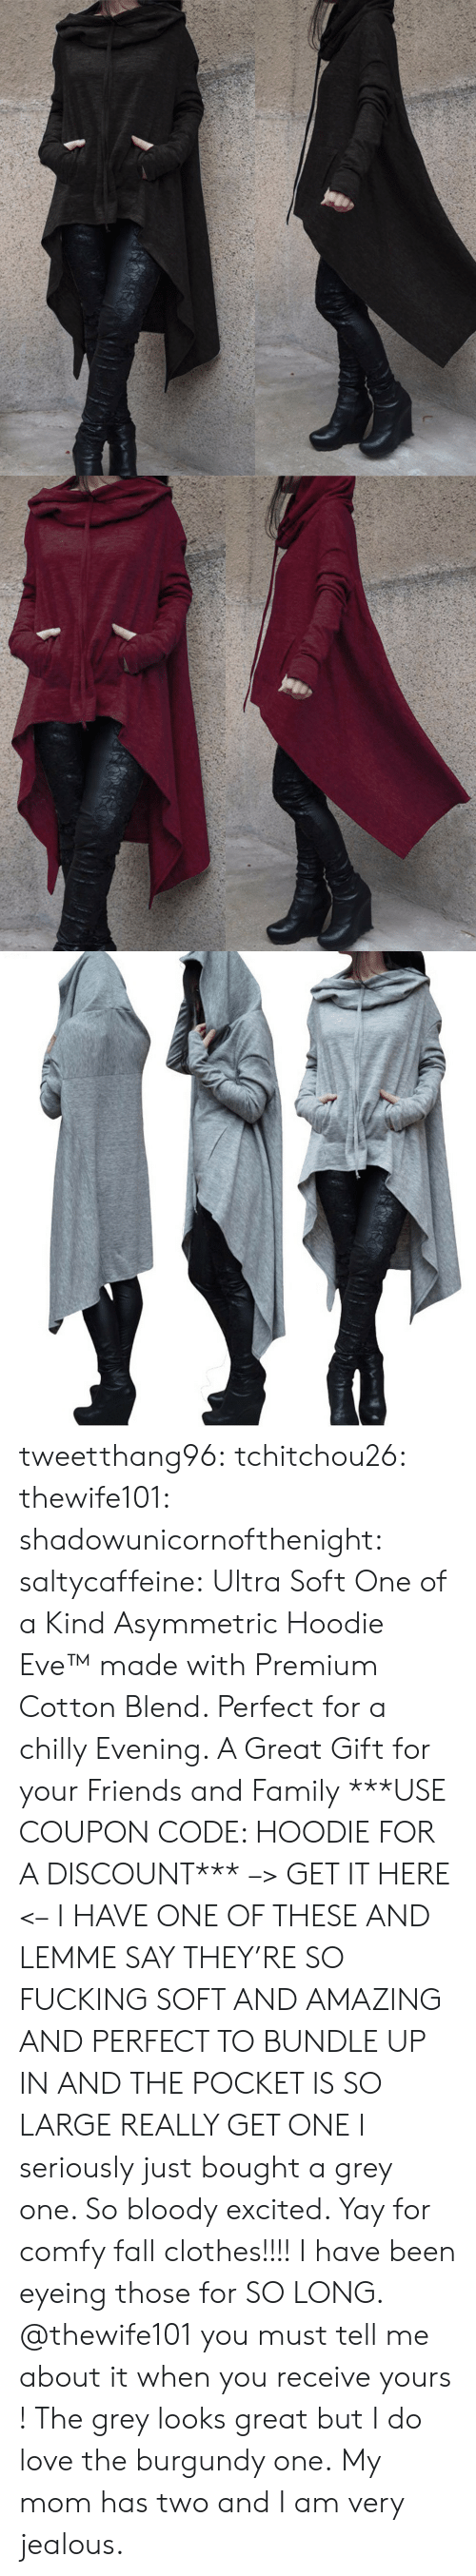 jealous: tweetthang96:  tchitchou26: thewife101:  shadowunicornofthenight:  saltycaffeine:  Ultra Soft One of a Kind Asymmetric Hoodie Eve™made with Premium Cotton Blend. Perfect for a chilly Evening. A Great Gift for your Friends and Family ***USE COUPON CODE: HOODIE FOR A DISCOUNT*** –> GET IT HERE <–   I HAVE ONE OF THESE AND LEMME SAY THEY'RE SO FUCKING SOFT AND AMAZING AND PERFECT TO BUNDLE UP IN AND THE POCKET IS SO LARGE REALLY GET ONE   I seriously just bought a grey one. So bloody excited. Yay for comfy fall clothes!!!!   I have been eyeing those for SO LONG. @thewife101 you must tell me about it when you receive yours ! The grey looks great but I do love the burgundy one.   My mom has two and I am very jealous.